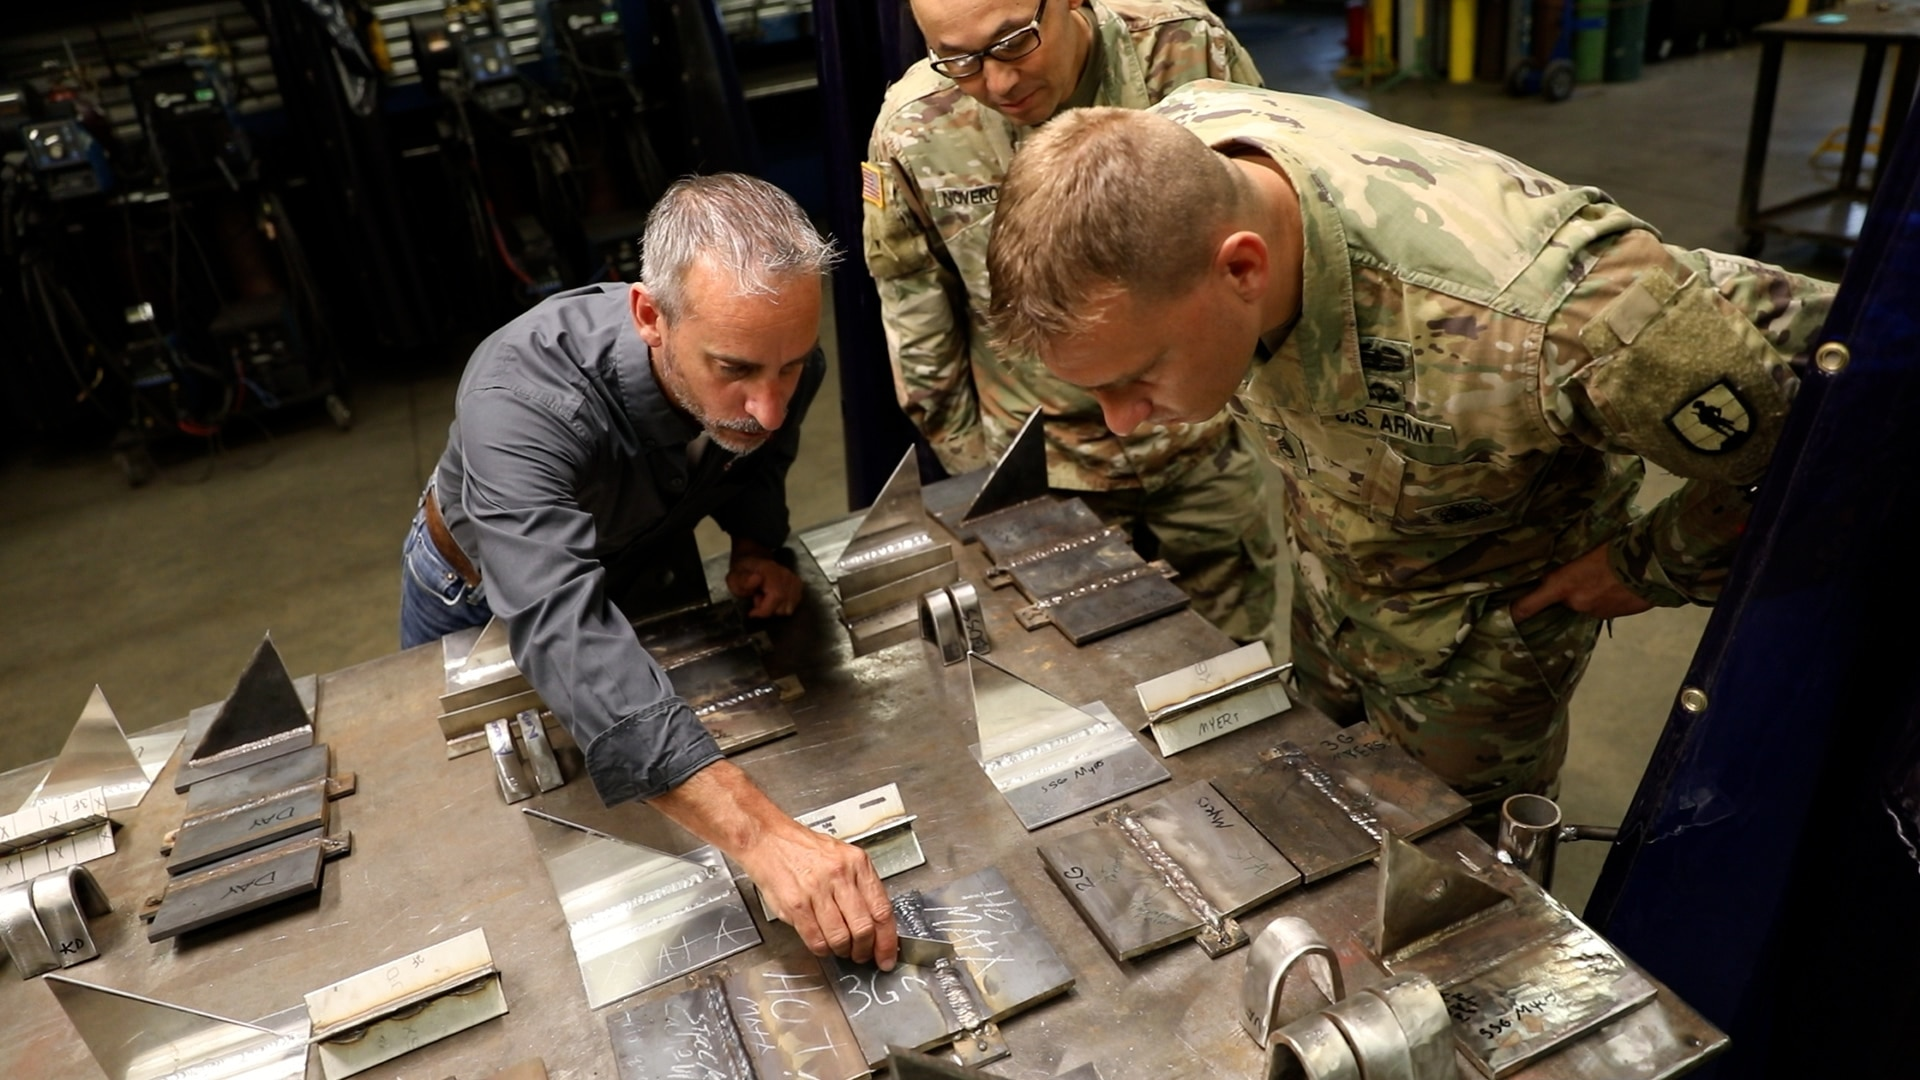 Eric Vannoy, lead welding instructor at Salina Area Technical College, left, inspects the work of Soldiers enrolled in the Advanced Leaders Course for the 91E Allied Trade Specialist military occupational specialty qualification course at the Kansas Army National Guard's Regional Training Site for Maintenance in Salina, Kansas, May 20, 2021. The KSARNG-SATC  partnership gives Soldiers completing the Army course the opportunity to enroll in and receive credit for college courses.